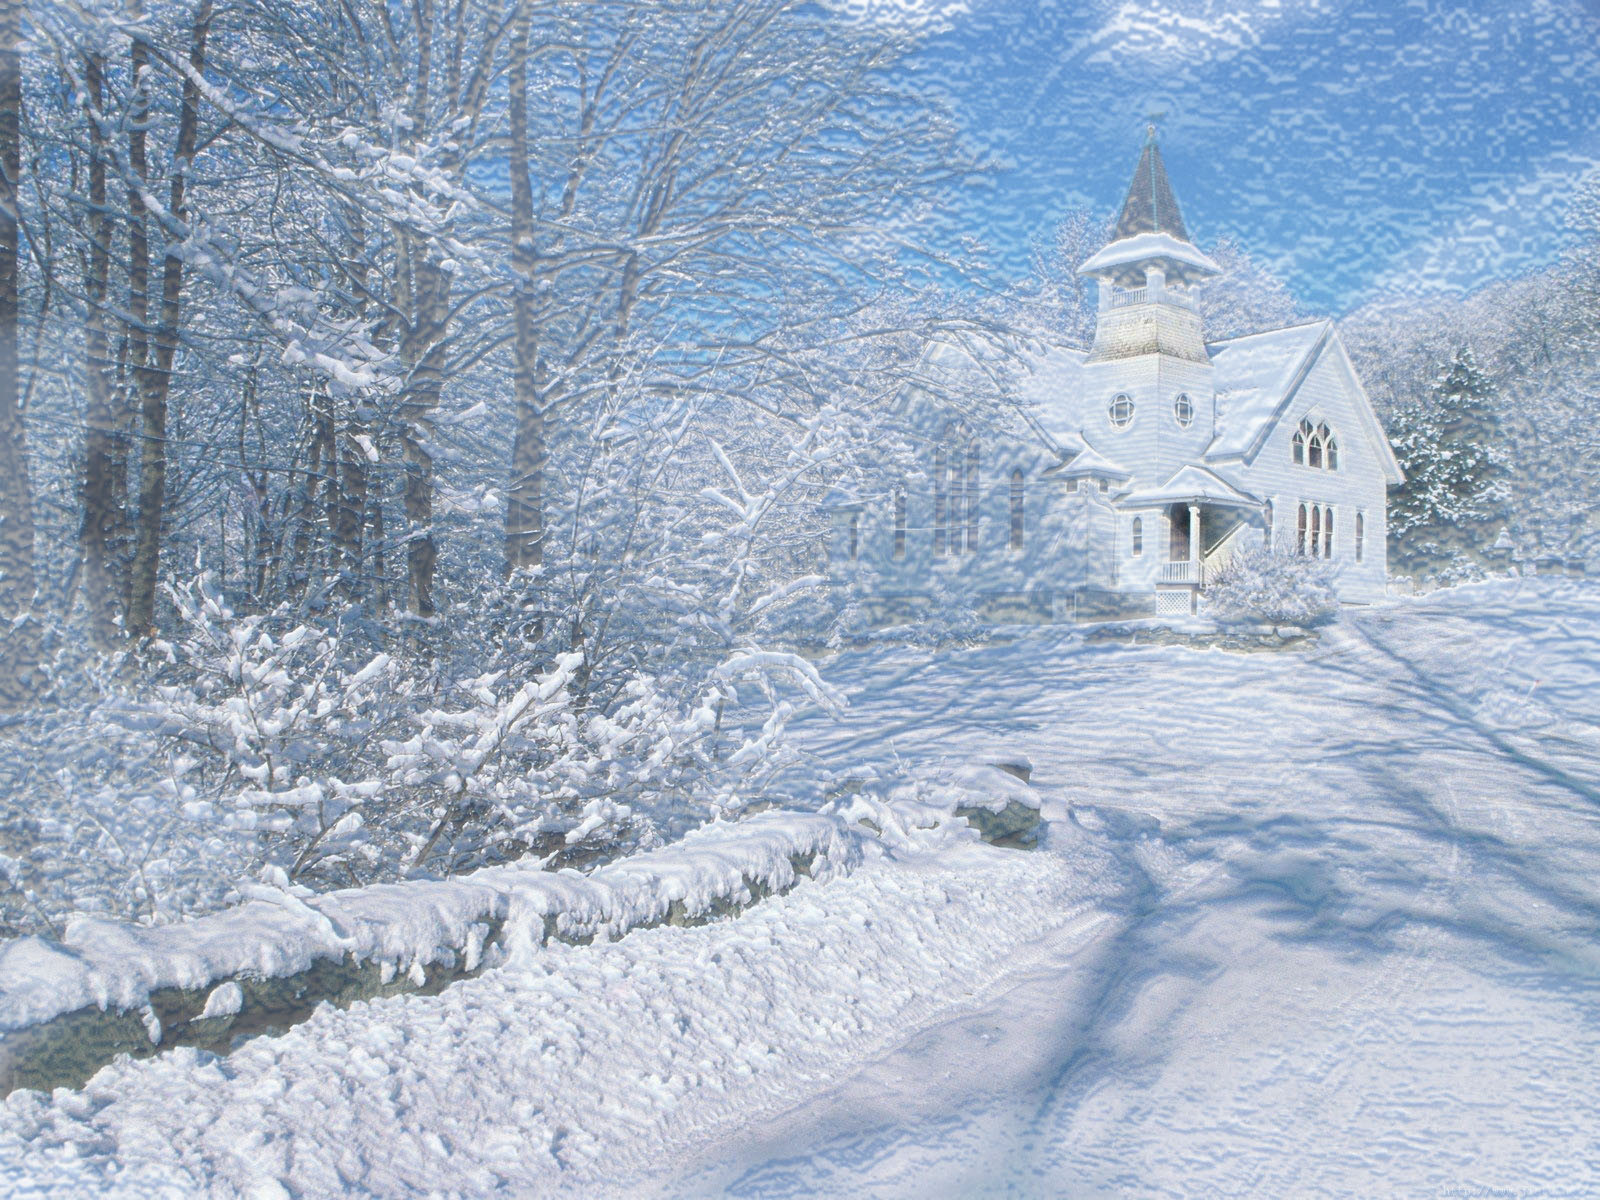 Winter wallpaper for computer wallpapersafari - Desktop wallpaper 1600x1200 ...